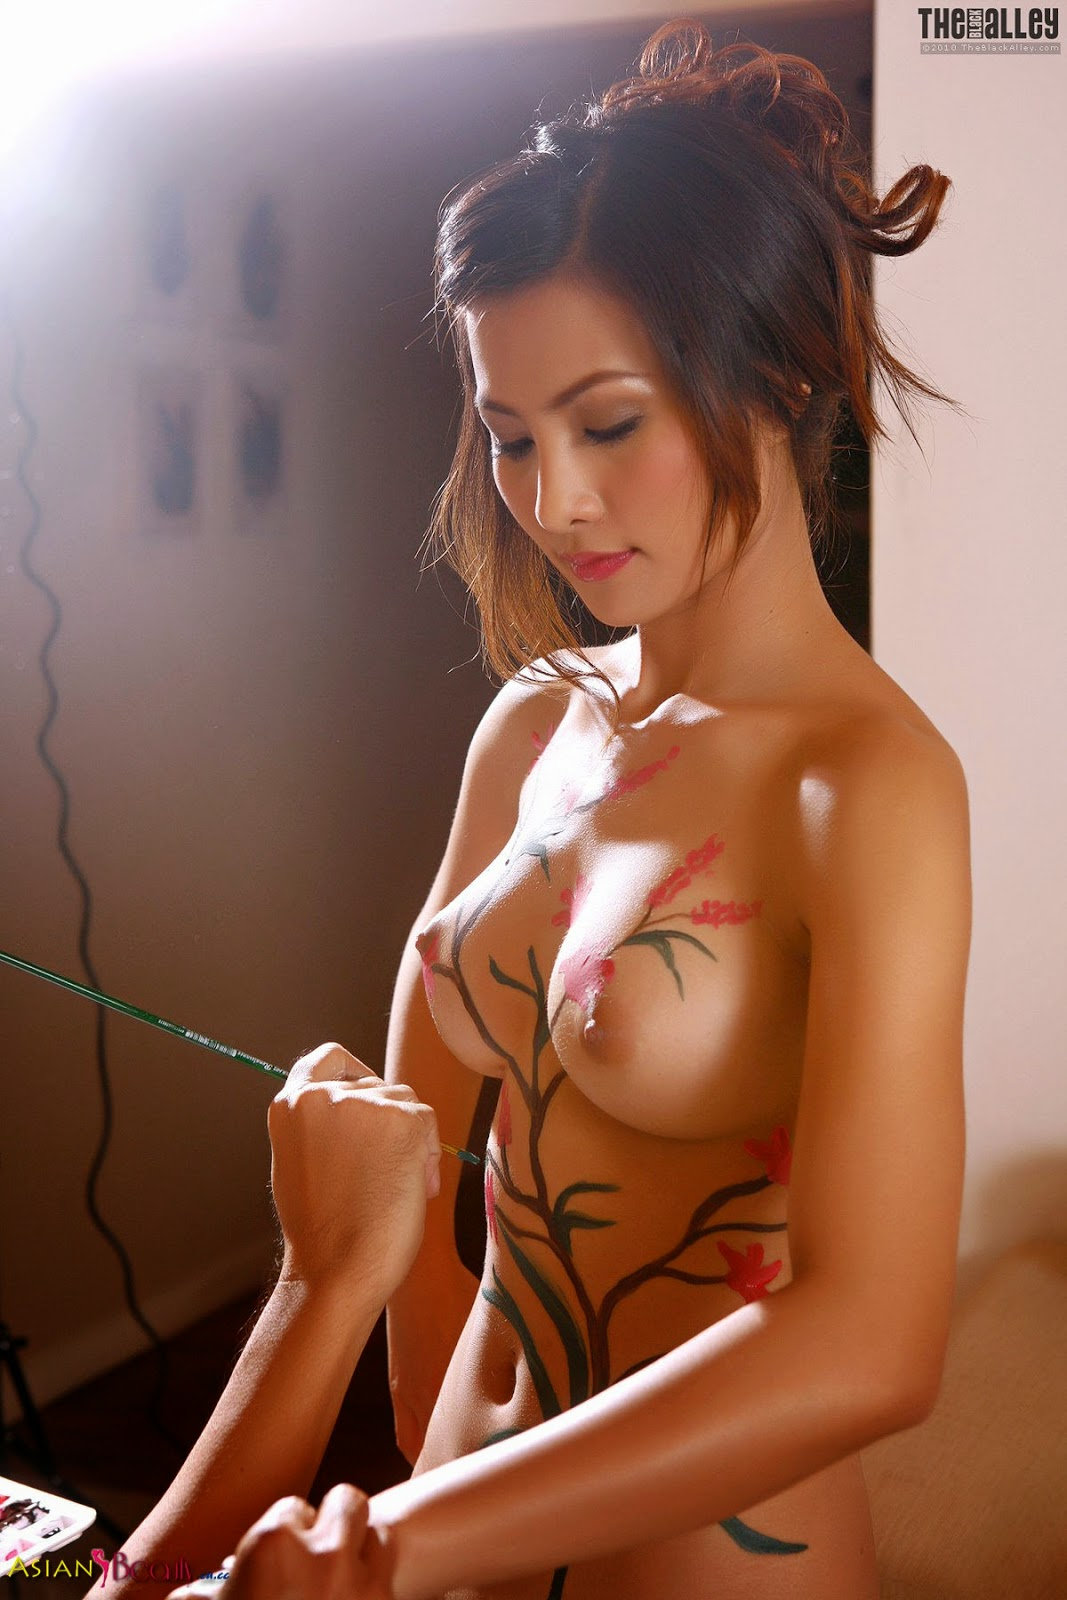 Nude Thai Galleries 92